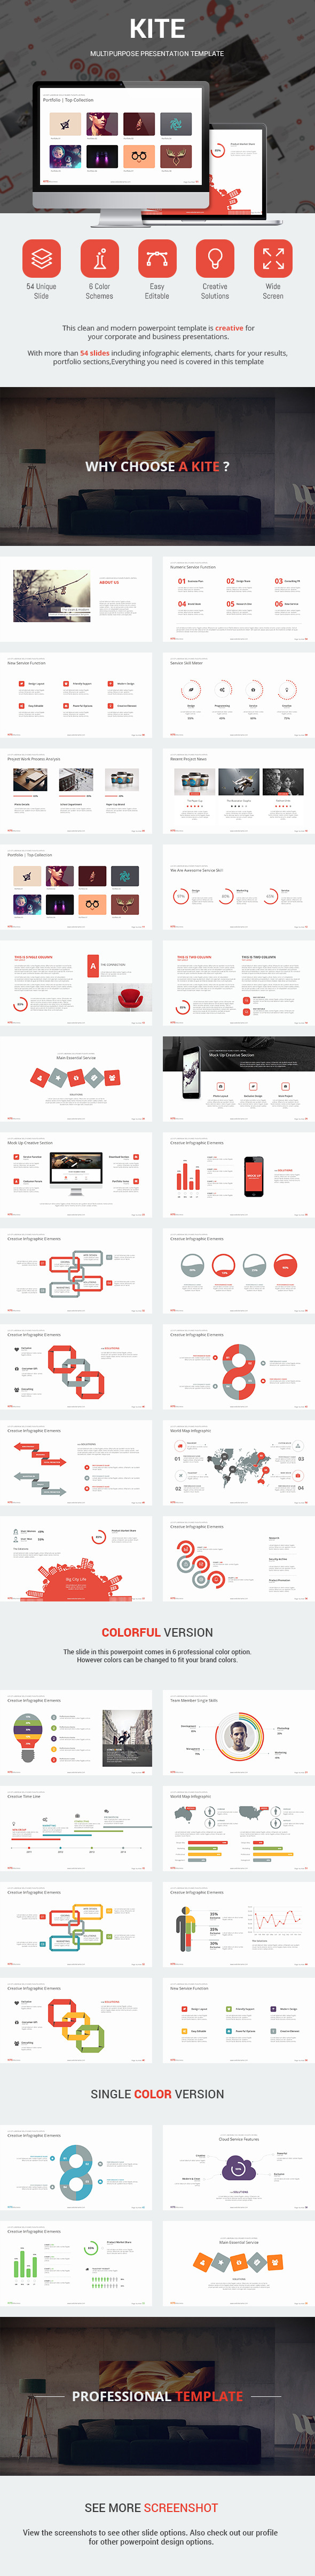 GraphicRiver Kite Presentation Template 9493897